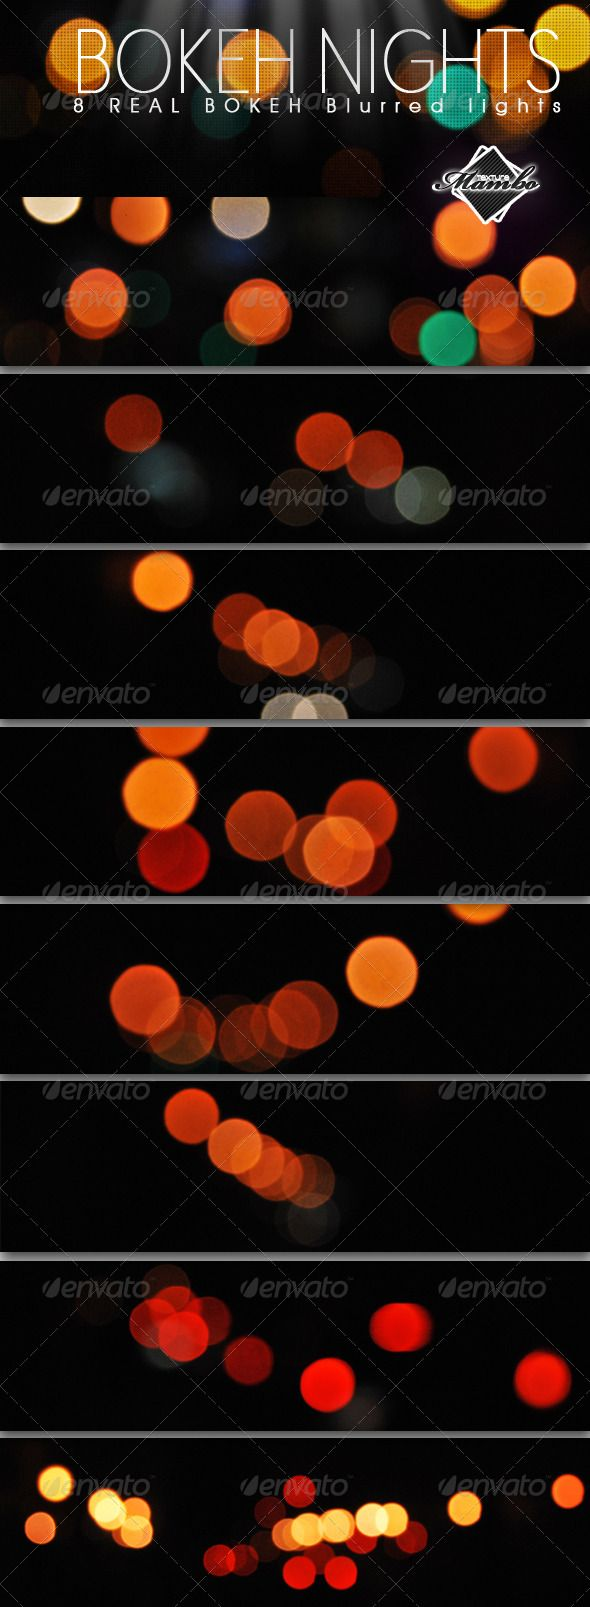 """Bokeh Nights - Real blurred lights - """"Bokeh Nights"""" is a pack of 8 real blurred lights. High res .jpg.  Useful resource for almost any kind of design, from flyers to web. Try the blend modes & get a real effect of blurring light. Or make your own brushes, patterns & lights, from this image set."""